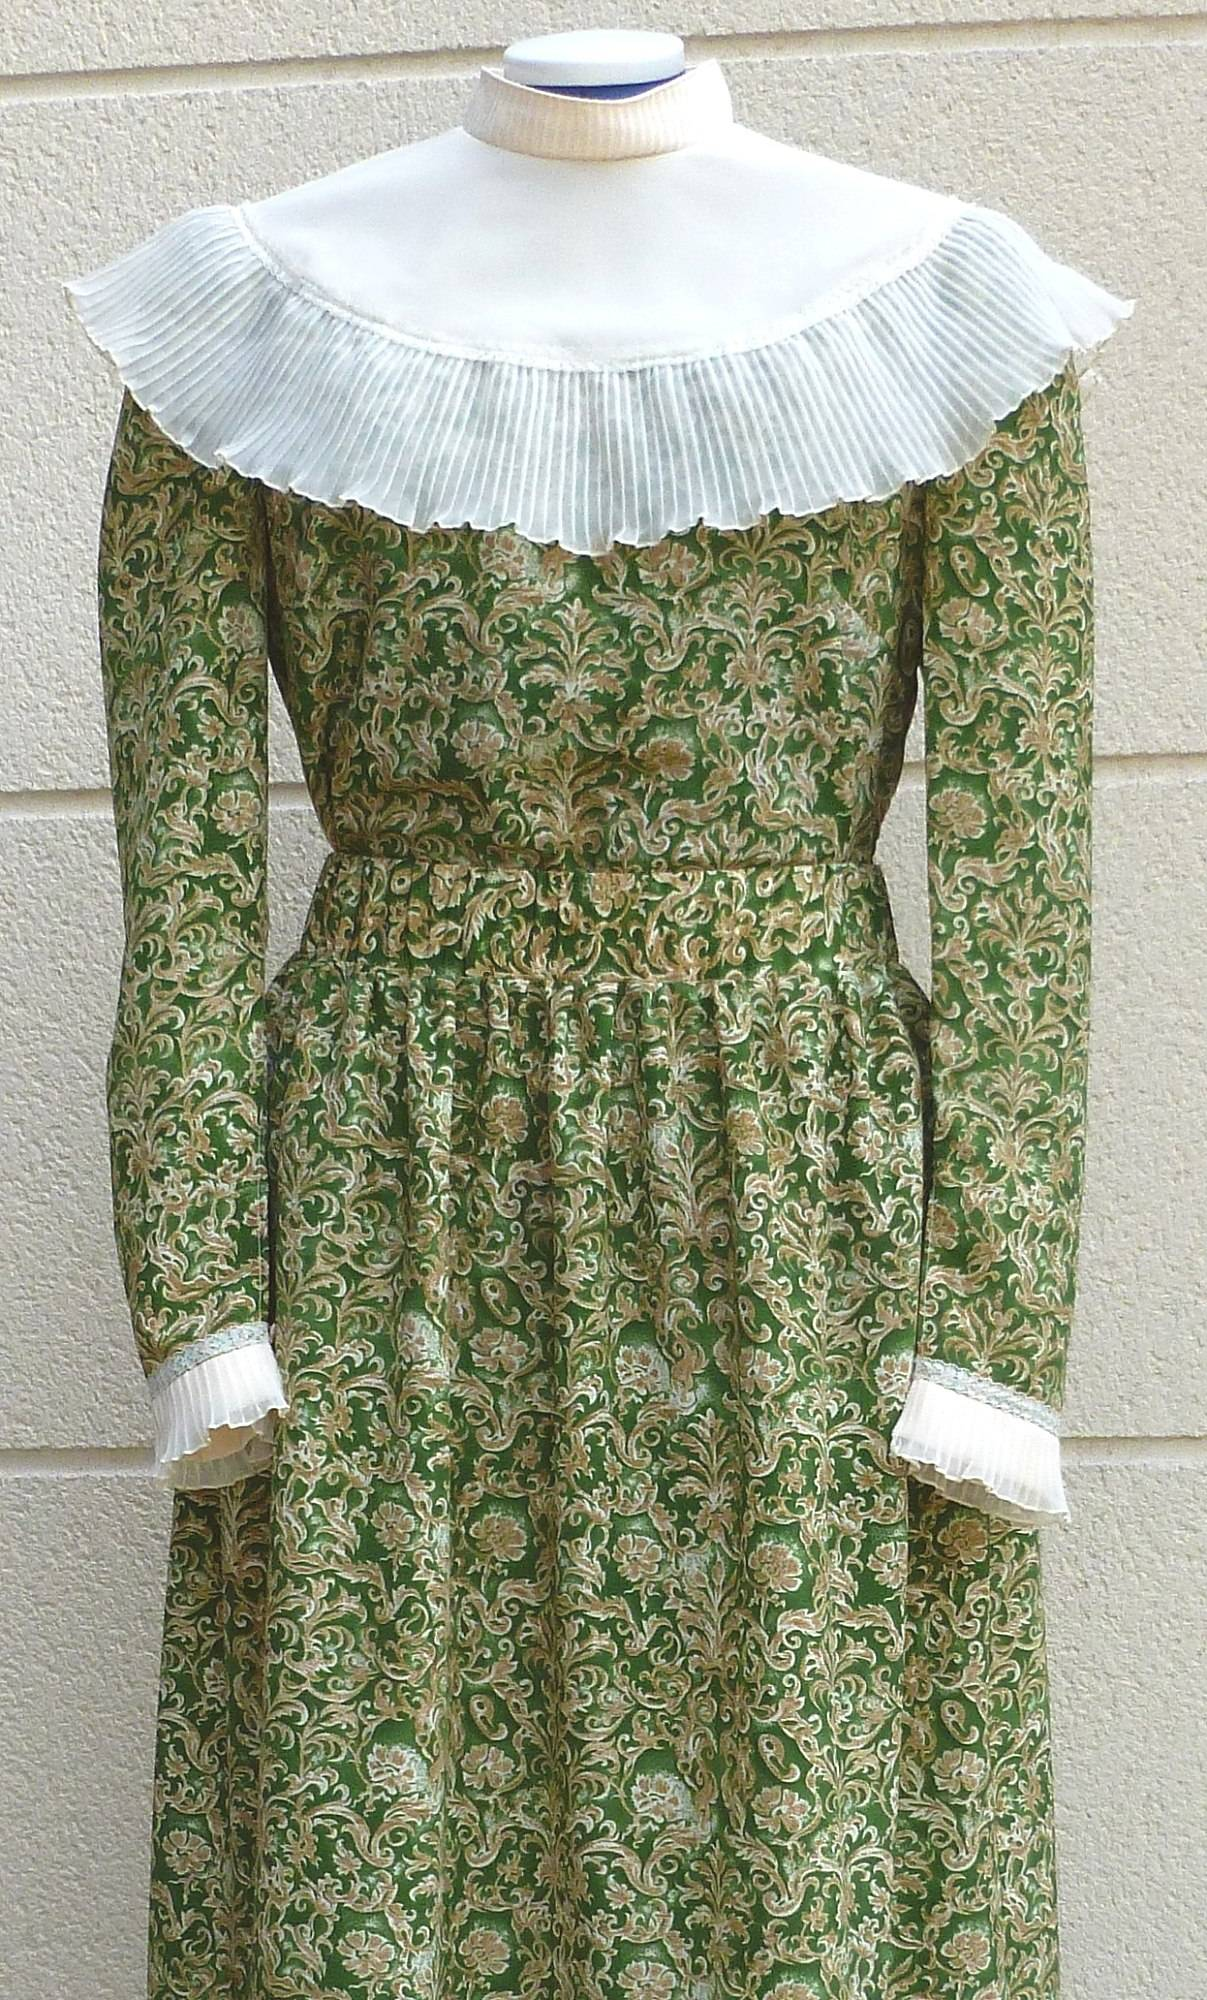 Costume-Robe-1900-taille-44-4